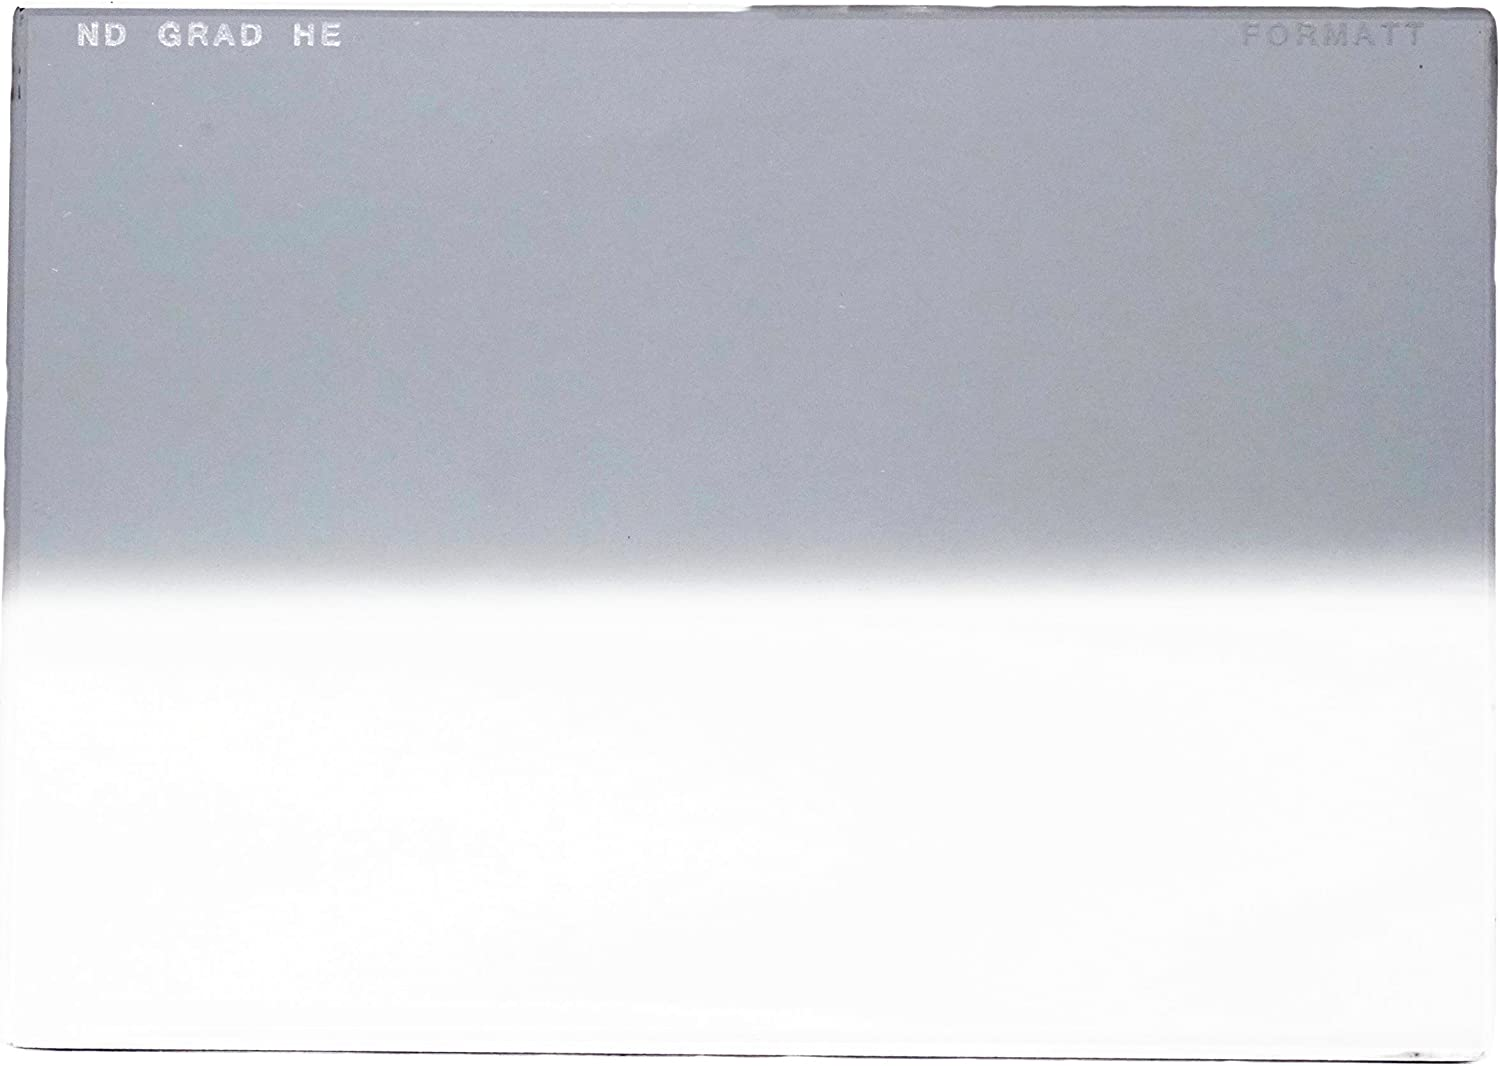 Formatt Hitech Glass 4x4 compatible with all 4x4 matte boxes 100x100mm broadcast and film production for video 4 stops Neutral Density Grad Hard Edge 1.2